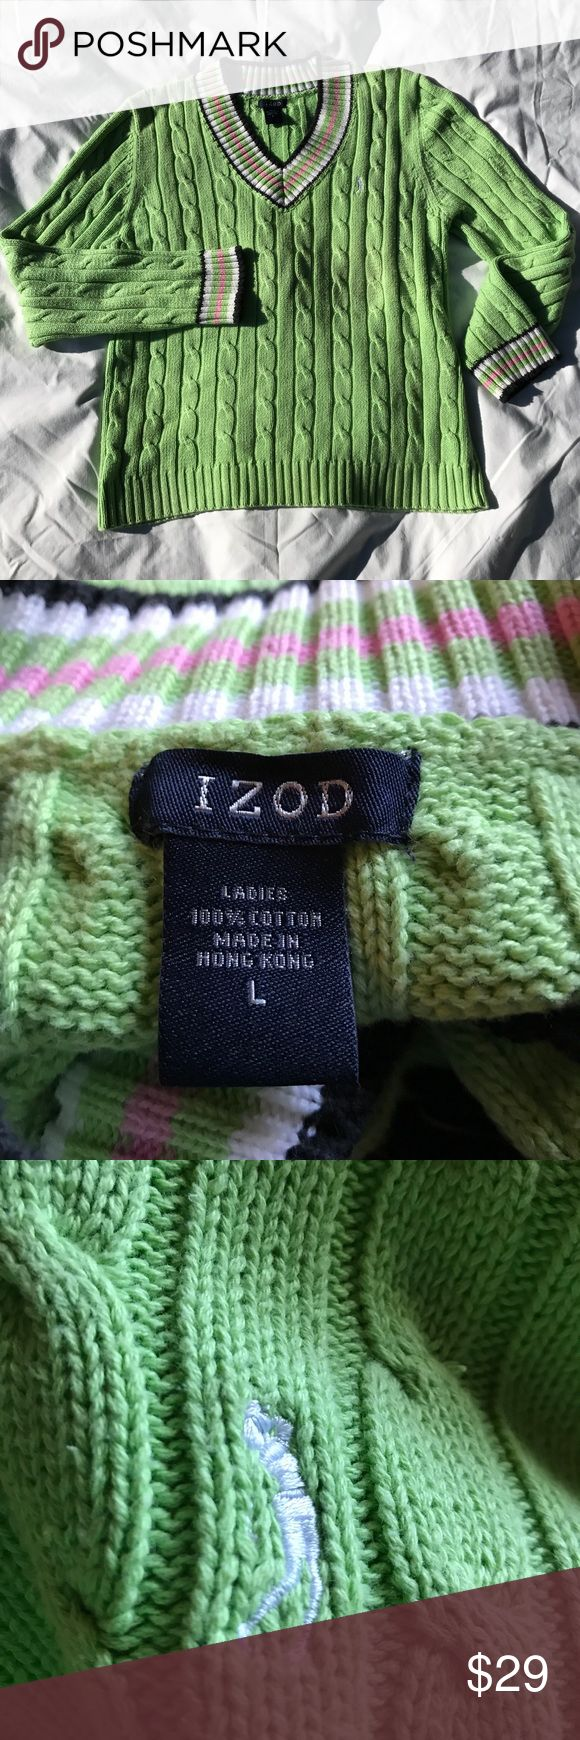 Izod Cotton V-Neck Golf Sweater Excellent condition. Like new. Machine washable. 100% Cotton. Bundle and save! Offers welcome. I have several of these to list. Izod Sweaters V-Necks